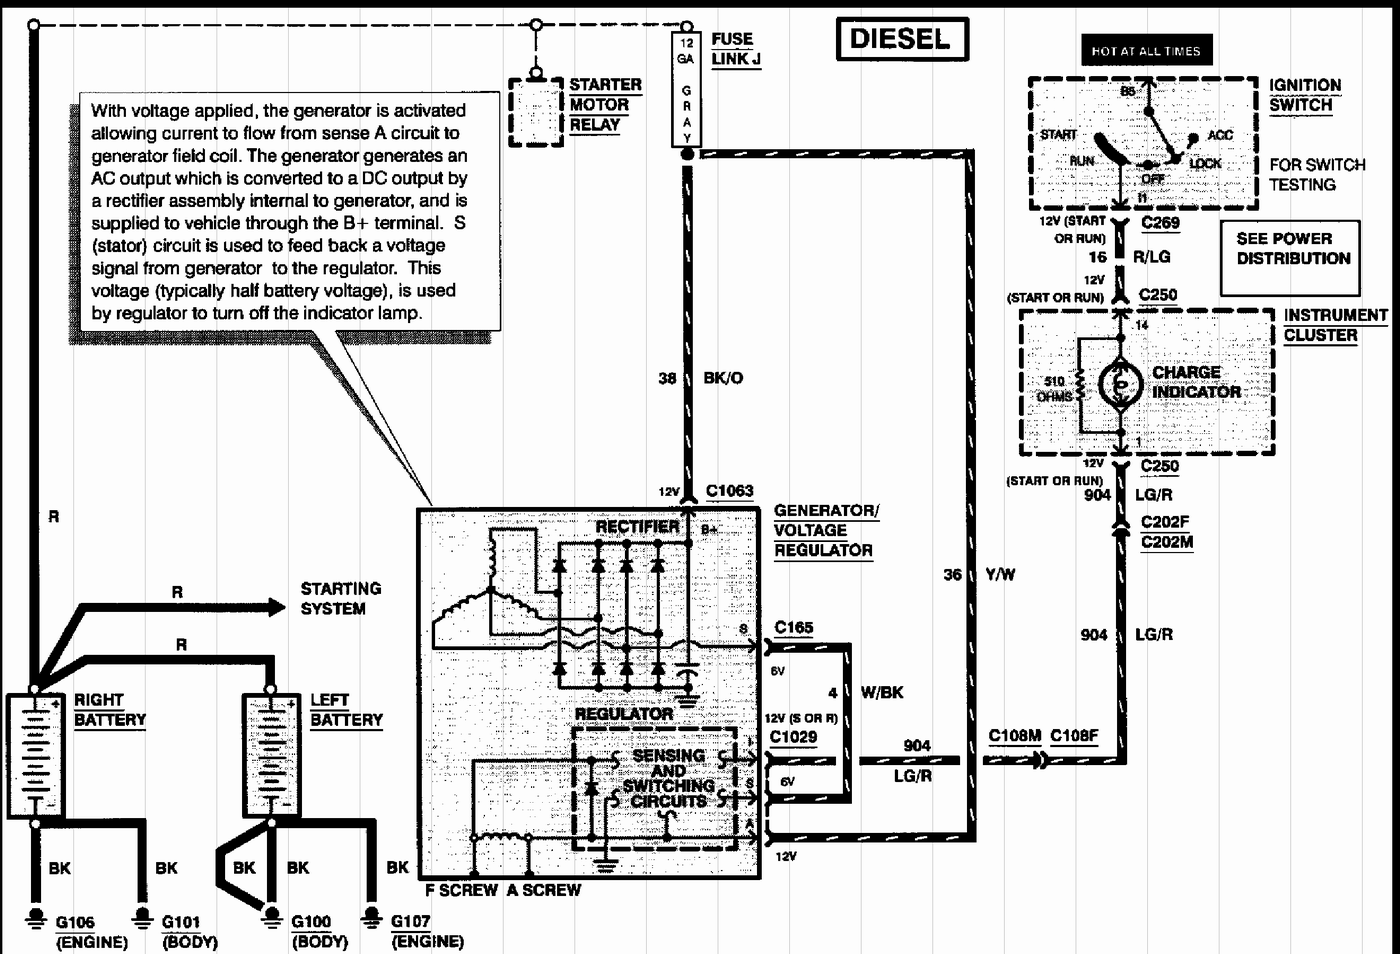 1995 7 3 powerstroke wiring schematic simple wiring diagram rh 4 mara cujas de 7 3 powerstroke [ 1400 x 954 Pixel ]